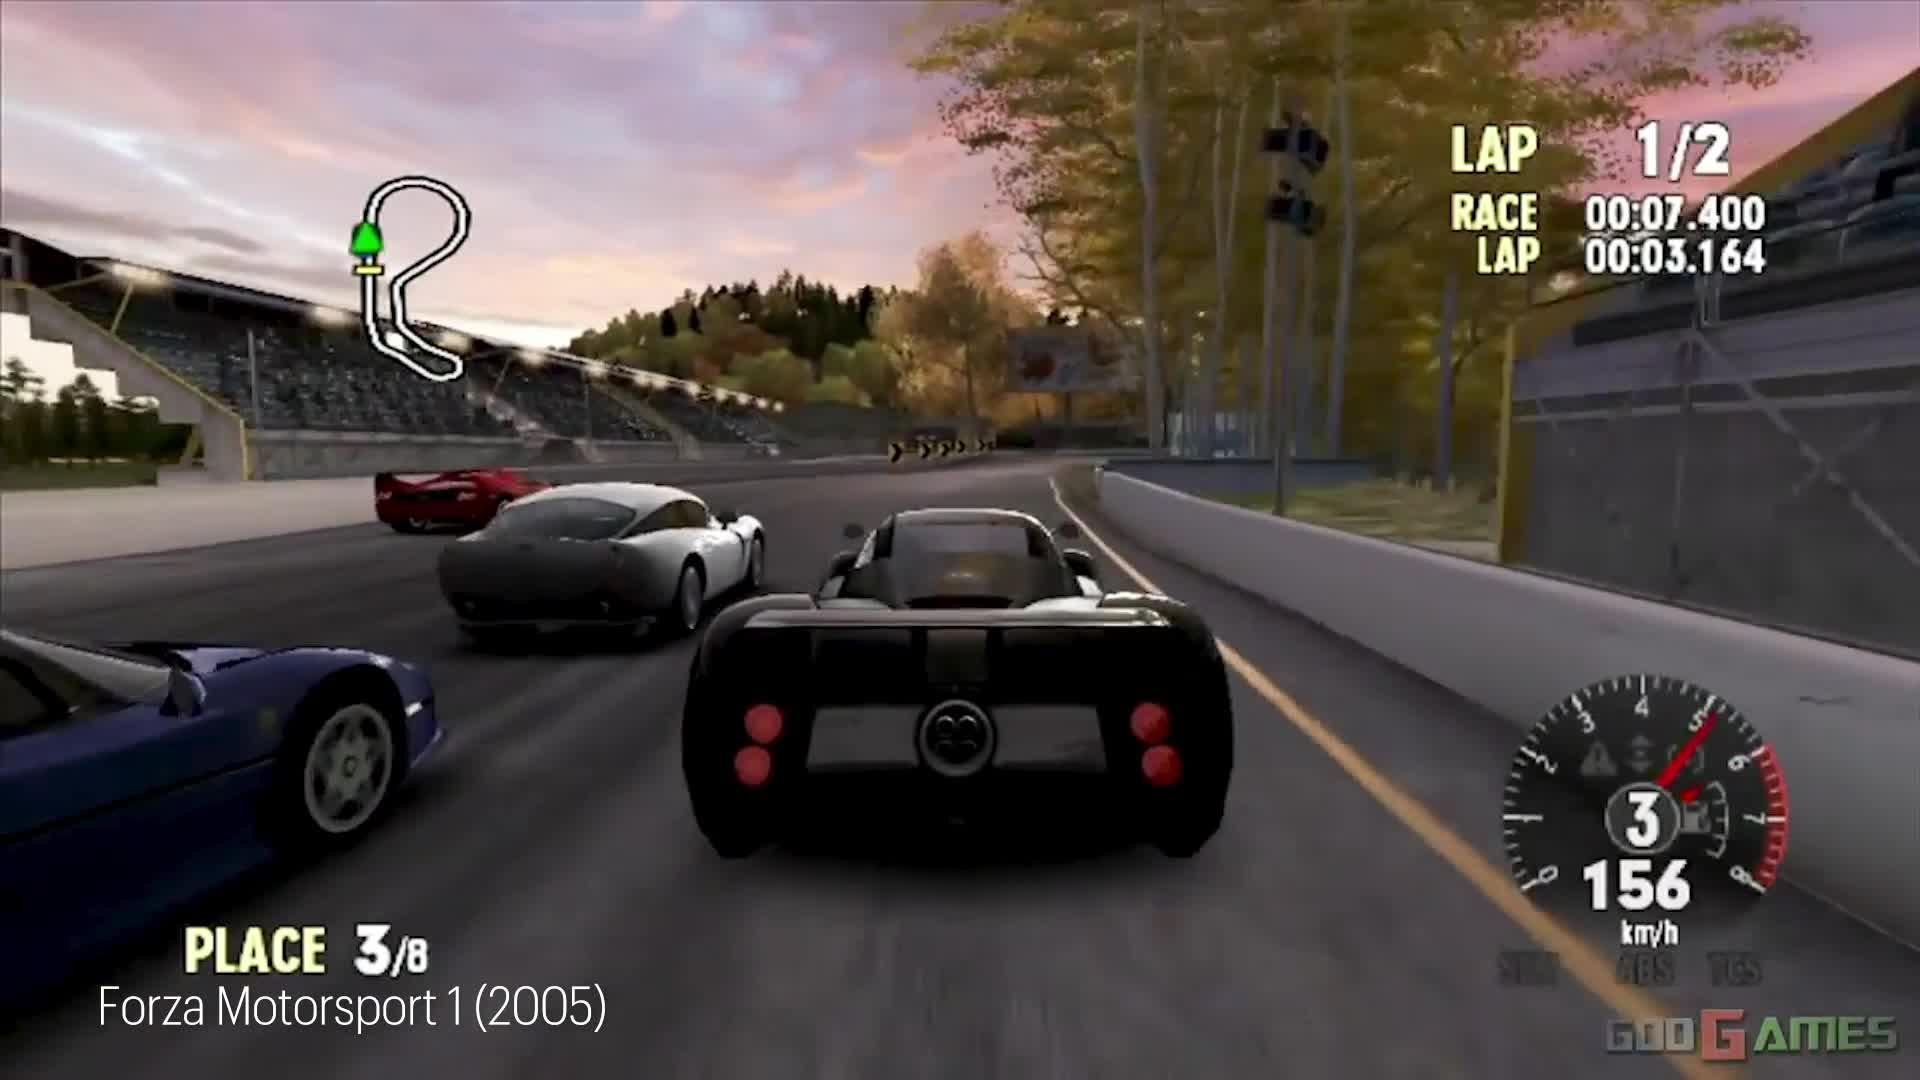 Today on War Stories, Ars Technica is joined by Dan Greenawalt, Creative Director of the Forza franchise, who takes us through the colossal potential (and many challenges) of utilizing deep neural networks to build sophisticated racing AI. Beginning with the original Drivatar AI in Forza Motorsport for XBOX in 2005, Greenawalt and his colleagues experimented with computer learning, refining their methods from iteration to iteration. It was once the AI system was unshackled from local hard drives and placed online in Forza Motorsport 5, however, that the floodgates truly opened. As the AI rapidly evolved, producing unexpected new behaviors, the Forza team quickly learned how challenging it would be to wield this two-edged sword in creating realistic opponents.